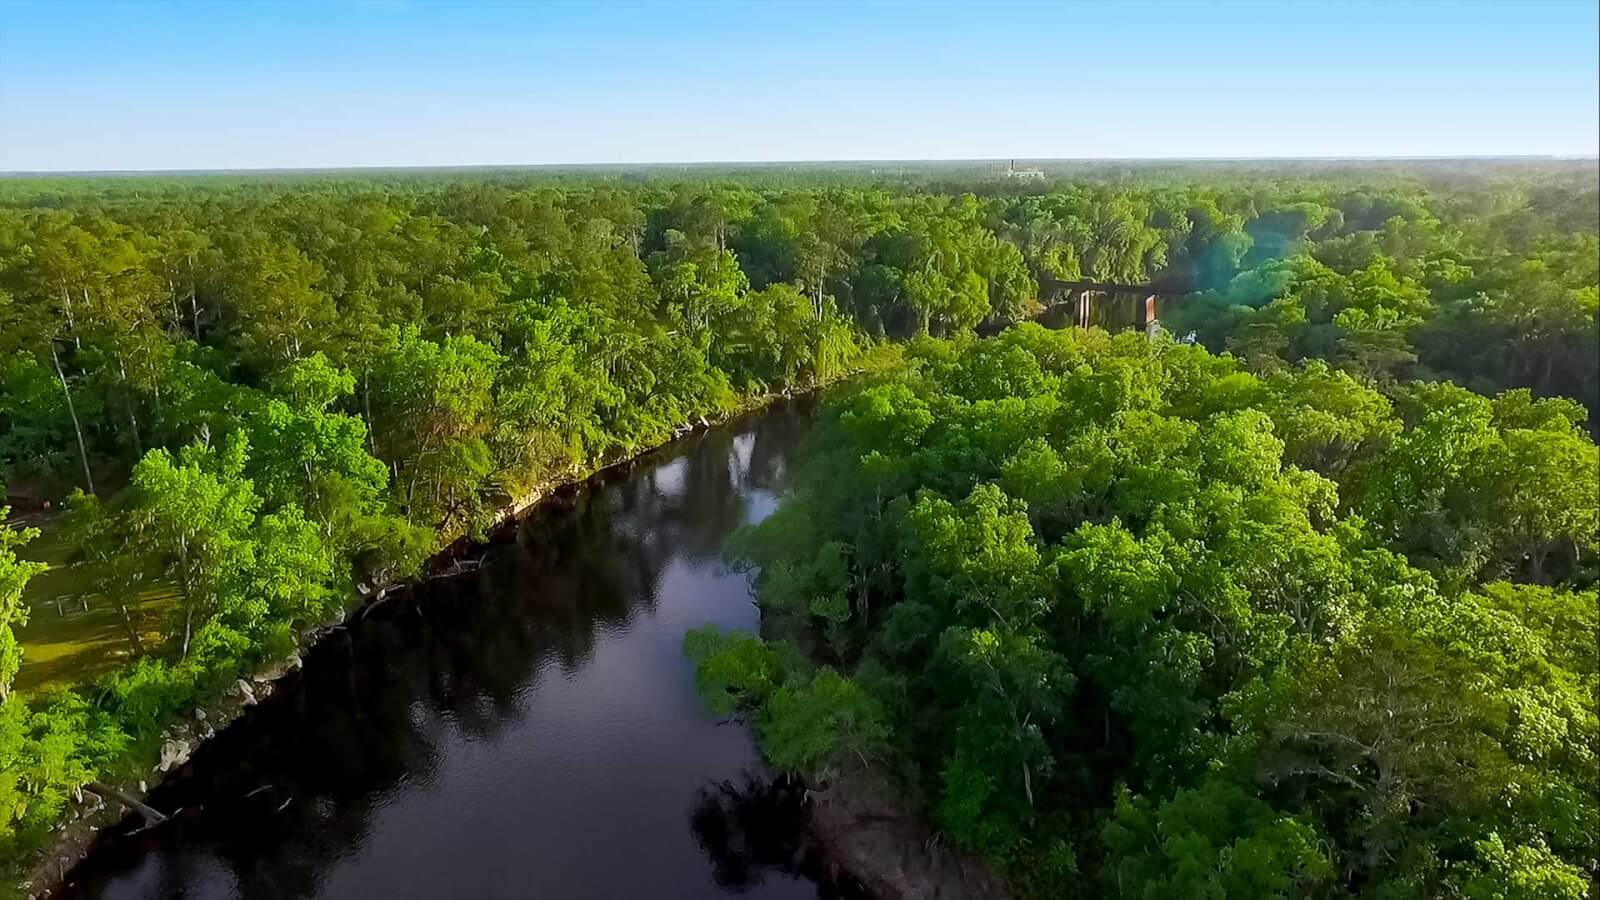 Aerial view of the Suwannee River